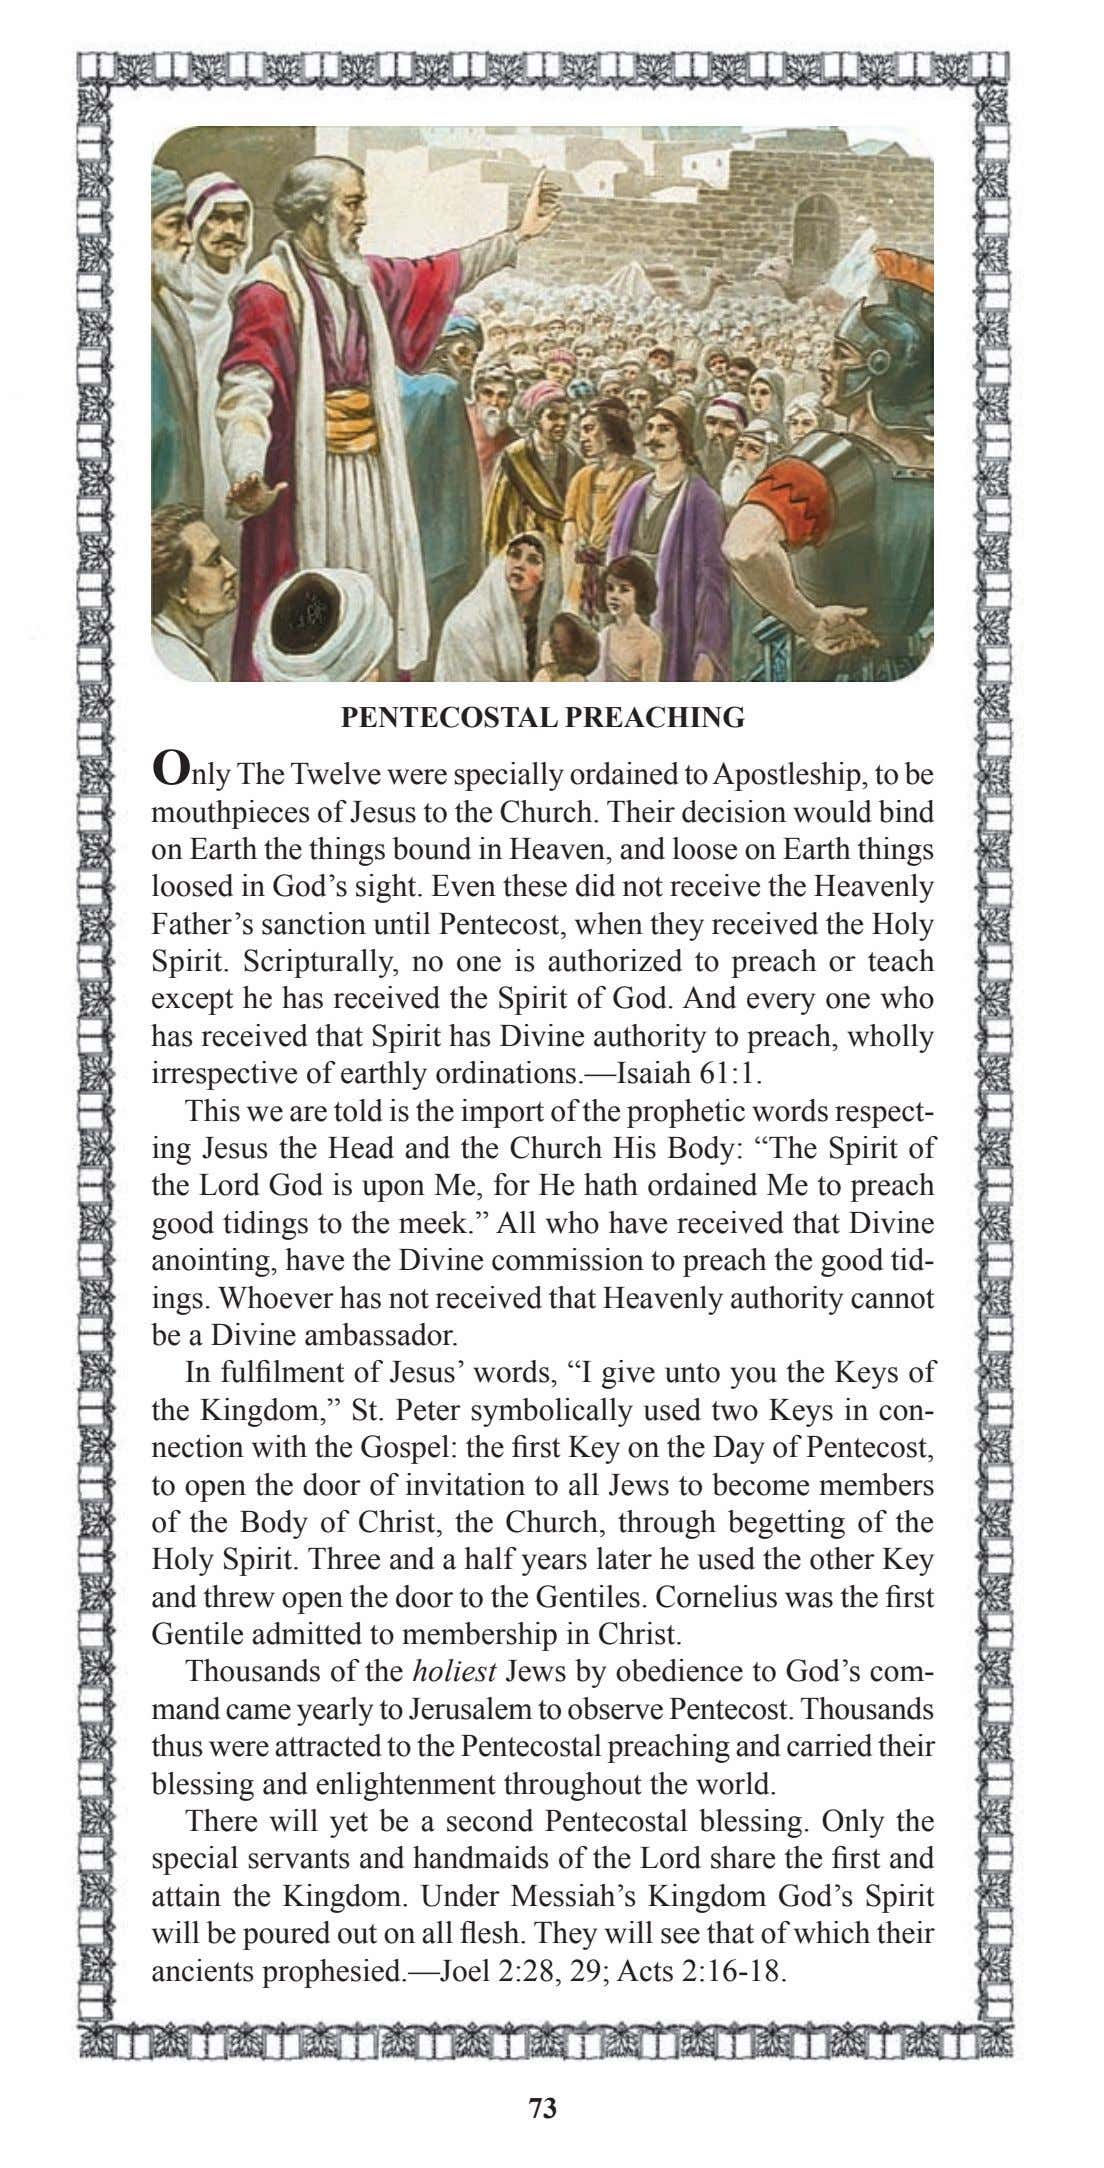 PENTECOSTAL PREACHING Only The Twelve were specially ordained to Apostleship, to be mouthpieces of Jesus